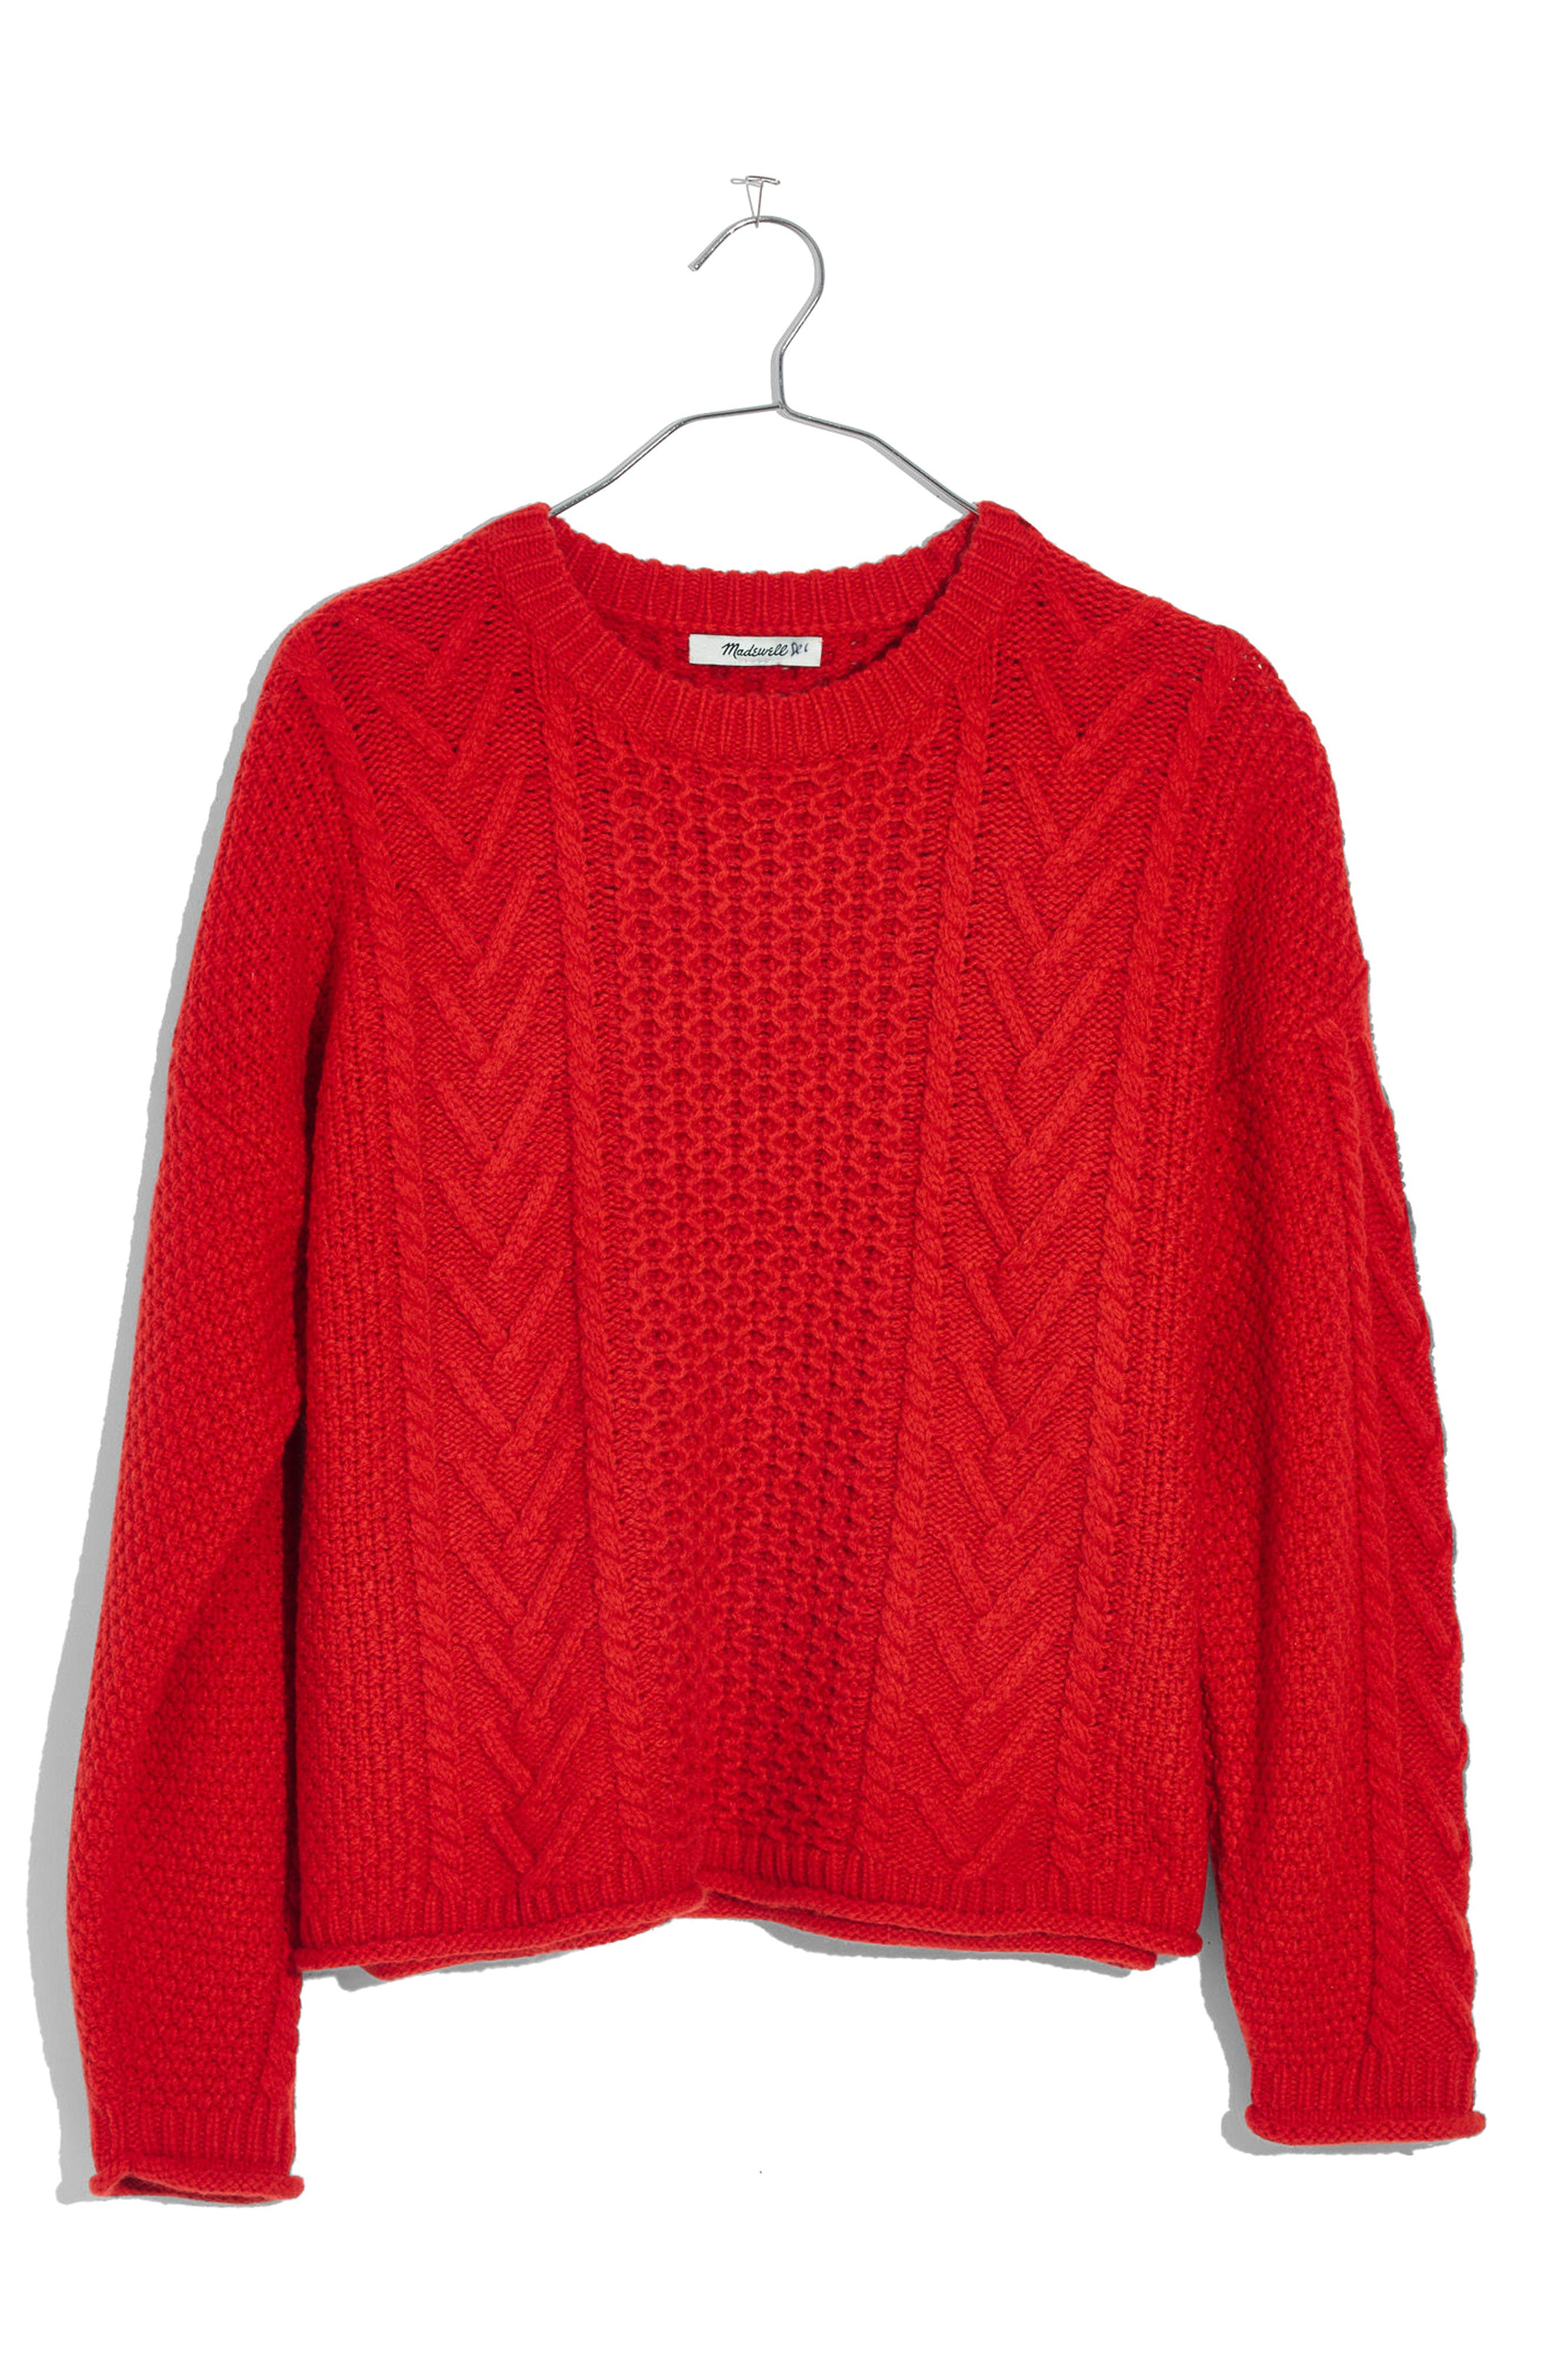 Alternate Image 1 Selected - Madewell Cable Knit Pullover Sweater